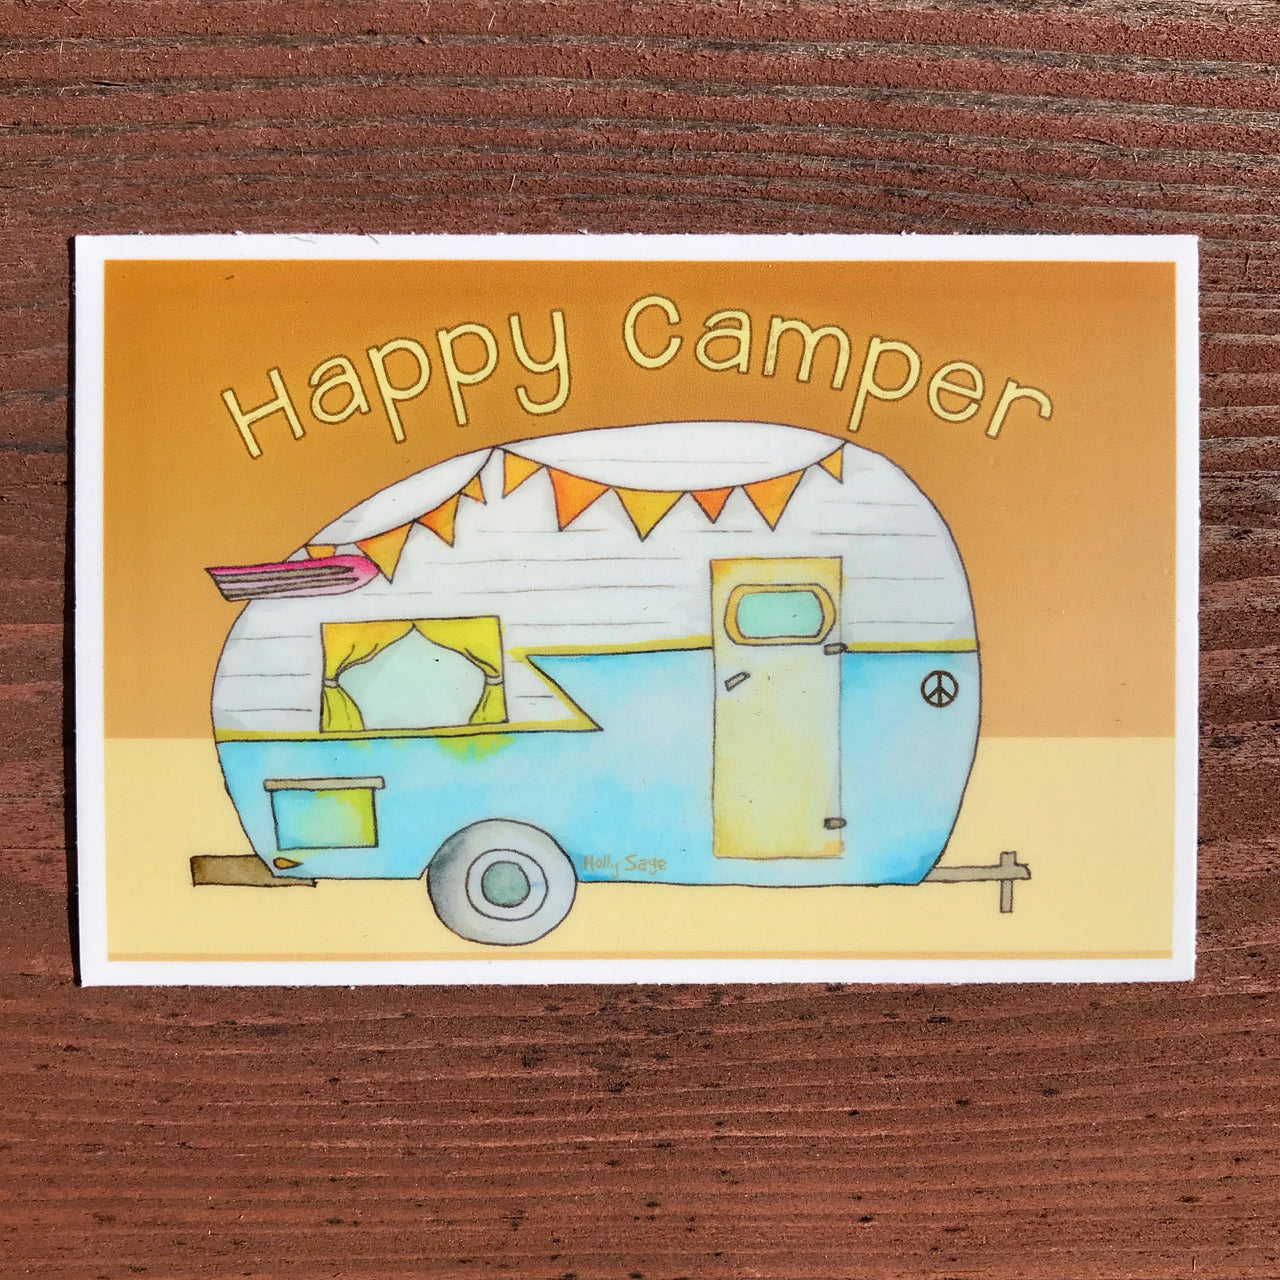 Happy camper trailer sticker